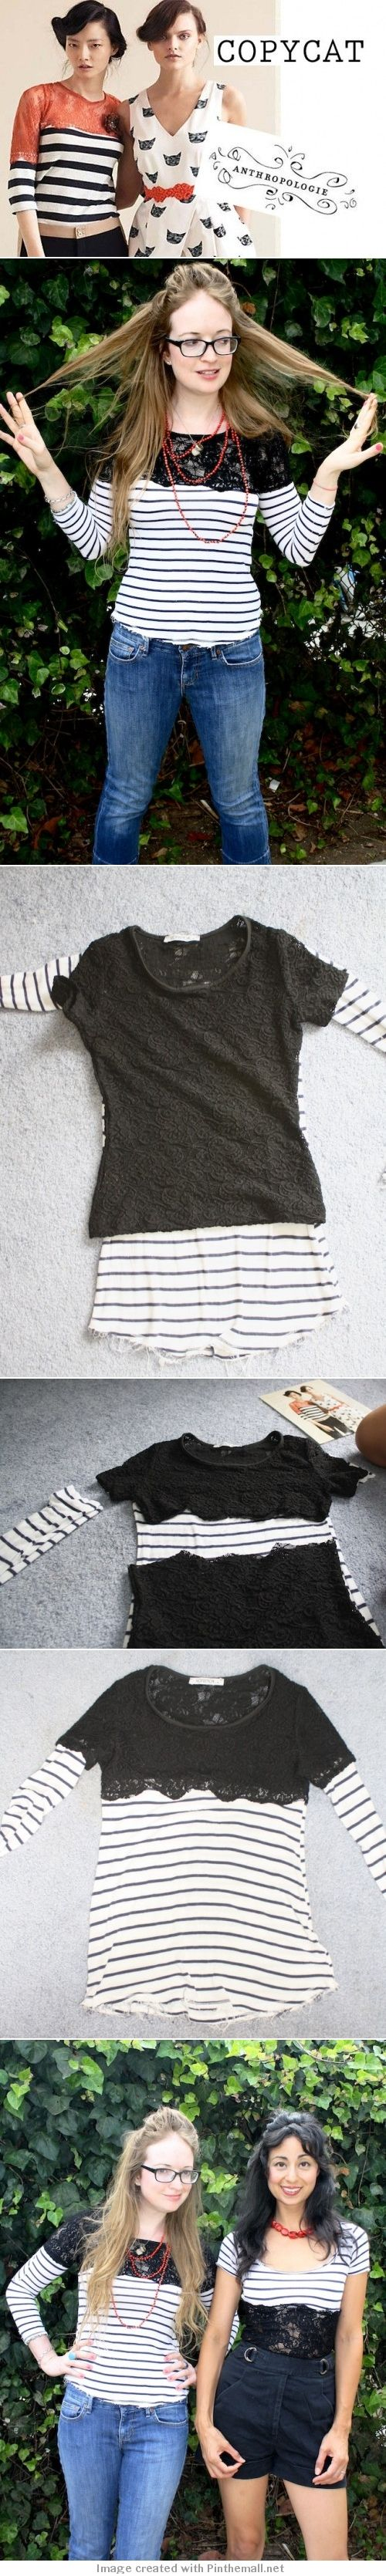 Anthropologie knockoff DIY Lace shouldered top using a lace shirt and a striped long sleeve tutorial. Actually makes two shirts!